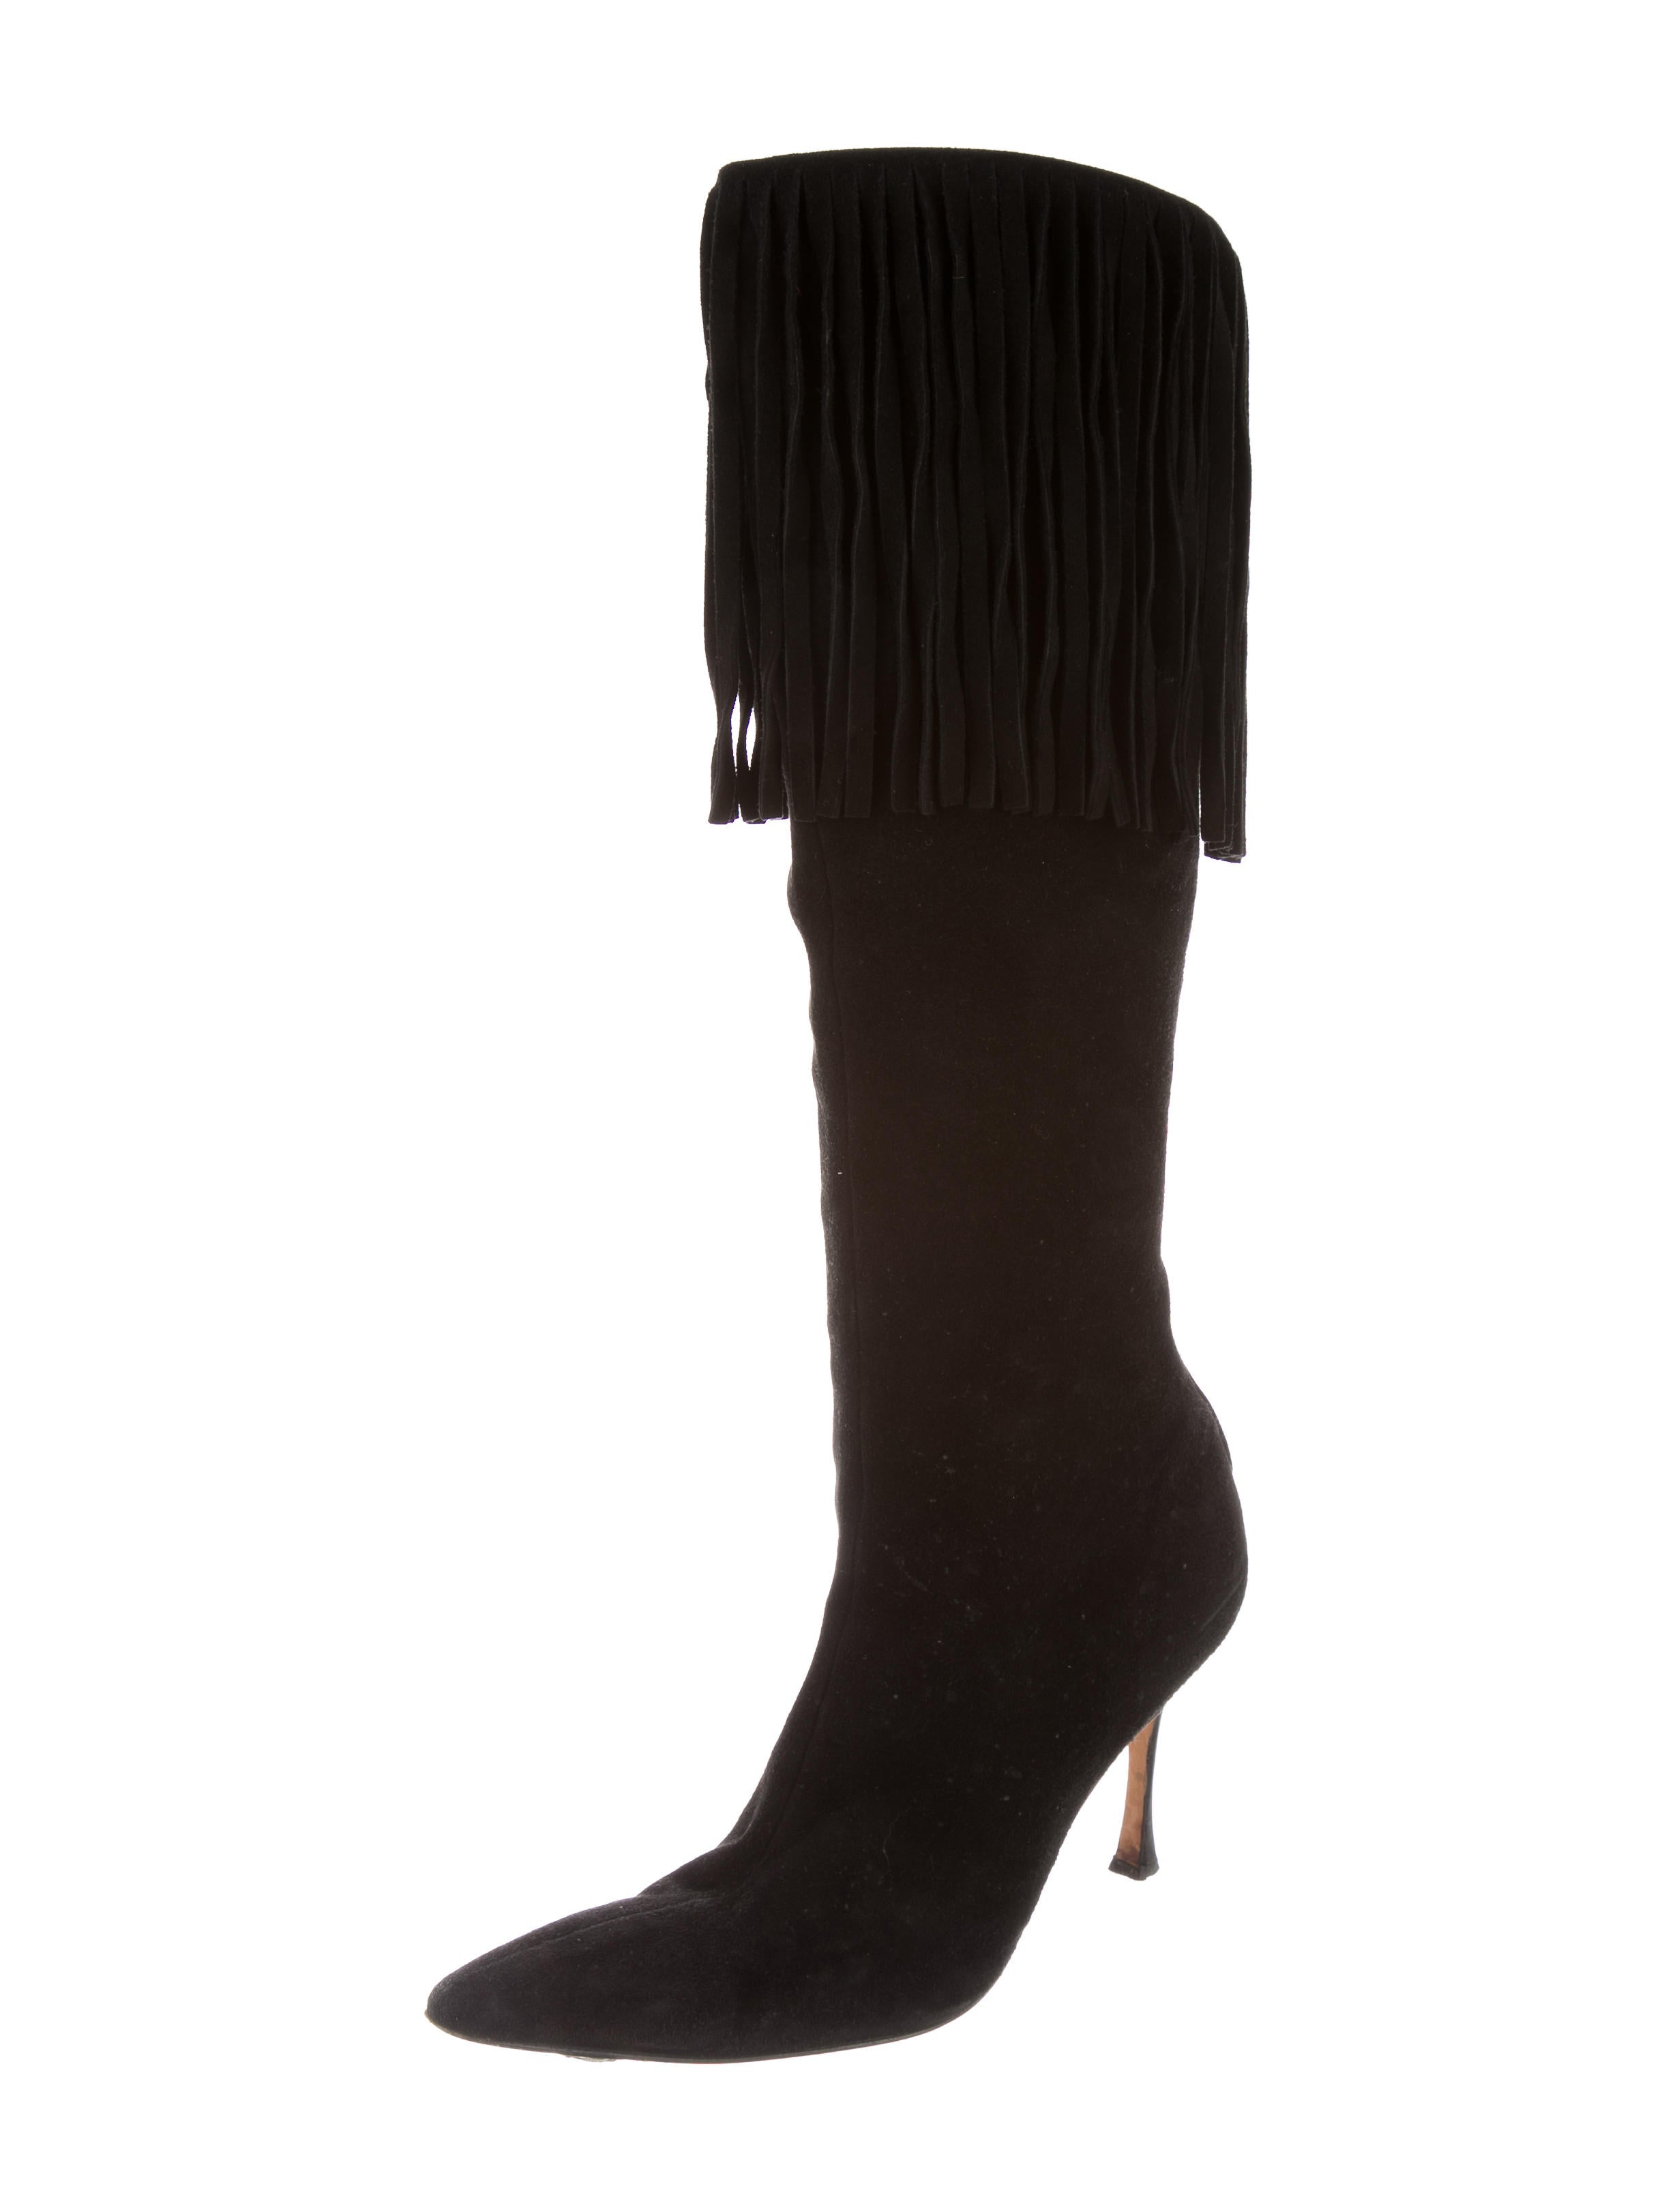 manolo blahnik fringe suede knee high boots shoes